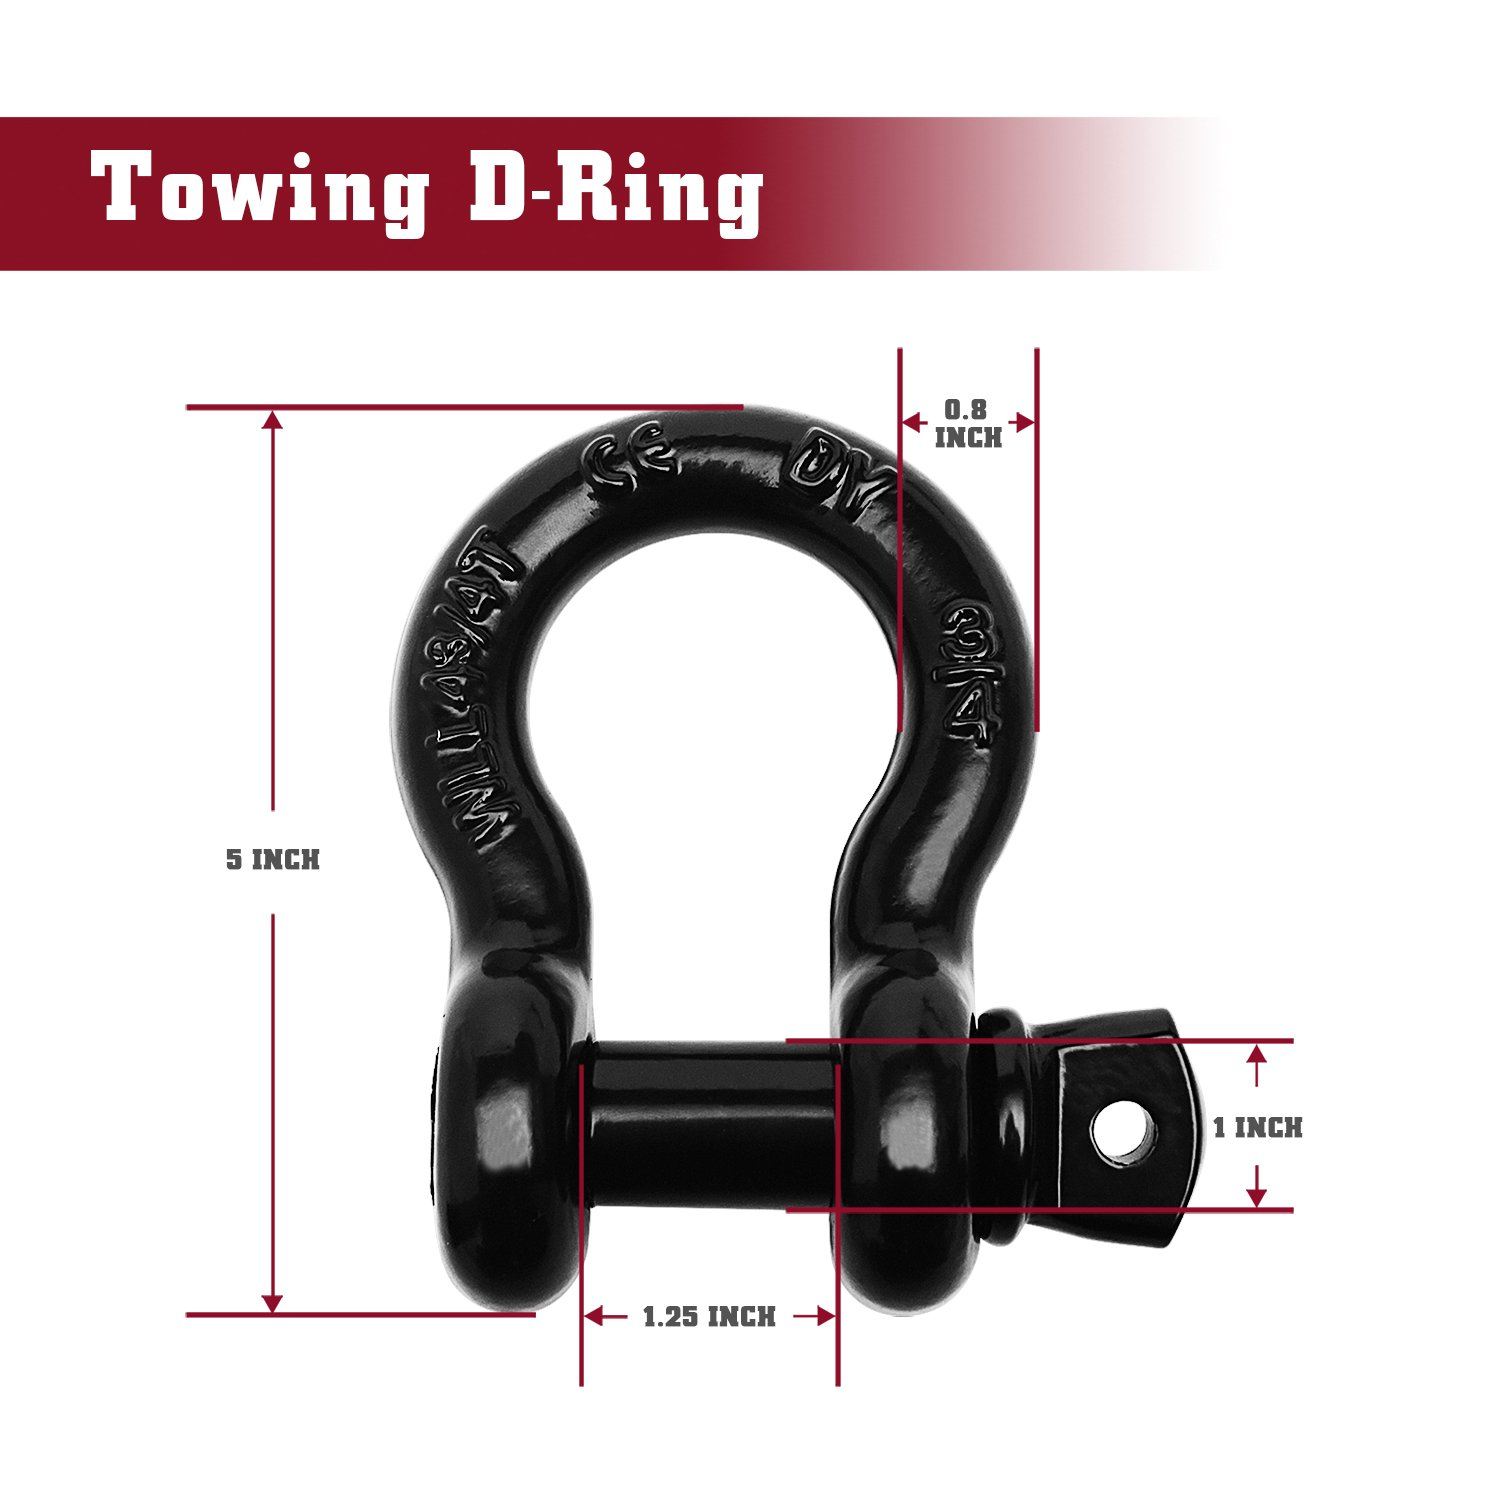 One Piece Snatch Strap for Winching TAC Shackles 3//4 D-Ring Rugged Off Road Heavy Duty with Isolator 4.75 Ton Ridging/&Recovery Silver Capacity for Jeep Vehicle Truck Towing 9,500 Lbs